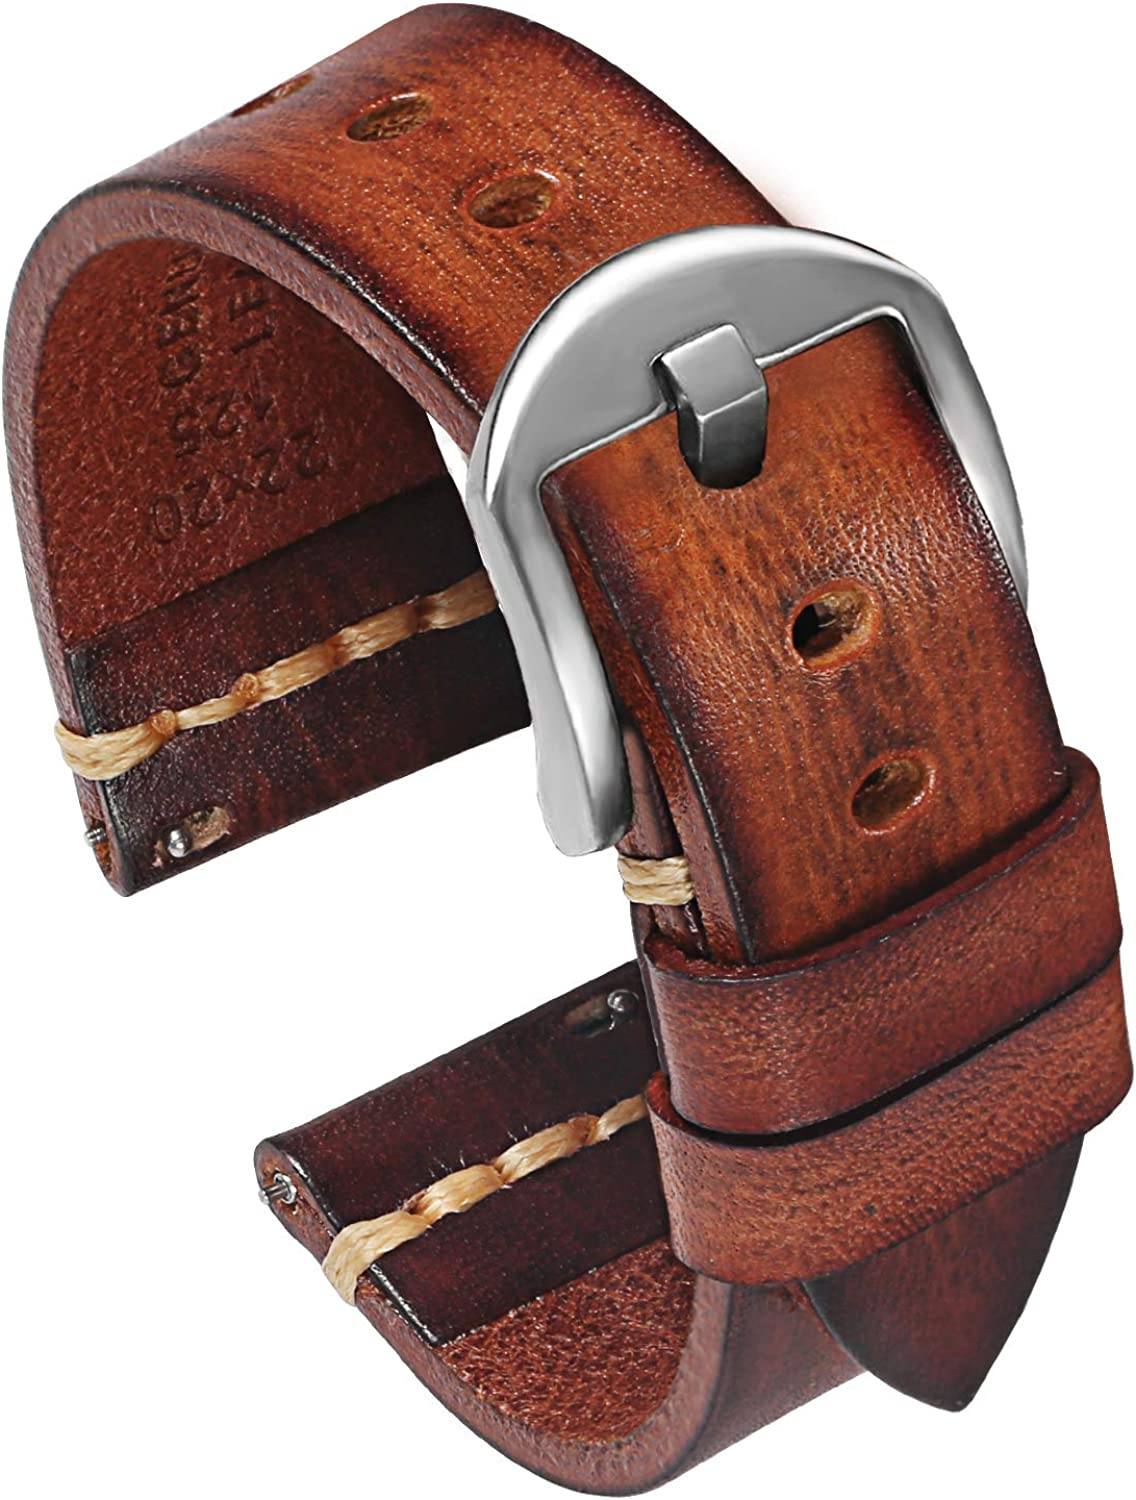 PBCODE Quick Release Leather Watch Bands for Men Women Handmade Vegetable Tanned Calfskin Vintage Genuine Leather Watch Straps 18mm 20mm 22mm 24mm